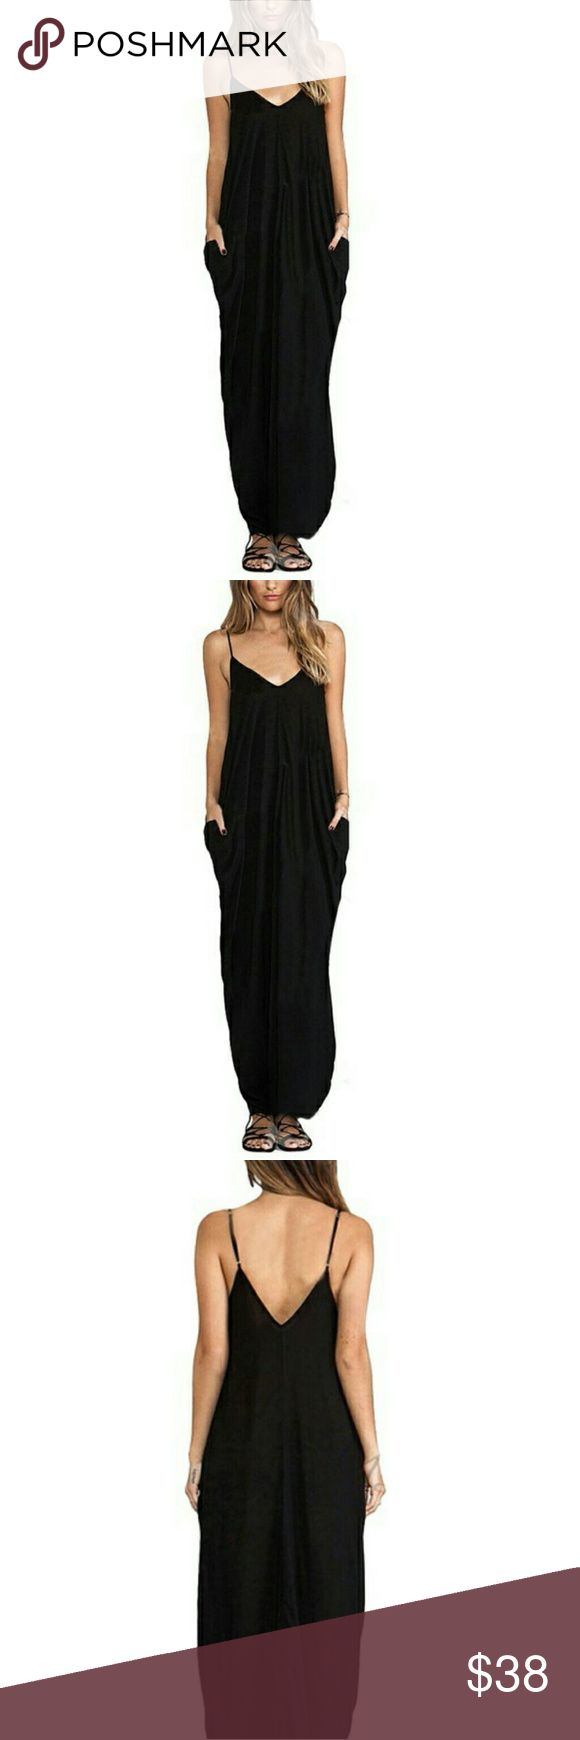 💖JUST IN💖 DESMOND MAXI DRESS - BLACK Adjustable straps, side pockets.  Chic, light and comfy.  Dress with your favorite accessories for various looks.  Perfect for those beautiful Summer days and excellent for added style while running those errands!  Bundle and save on price!  Poly/Rayon blend. Sizing - please refer to sizing chart Dresses